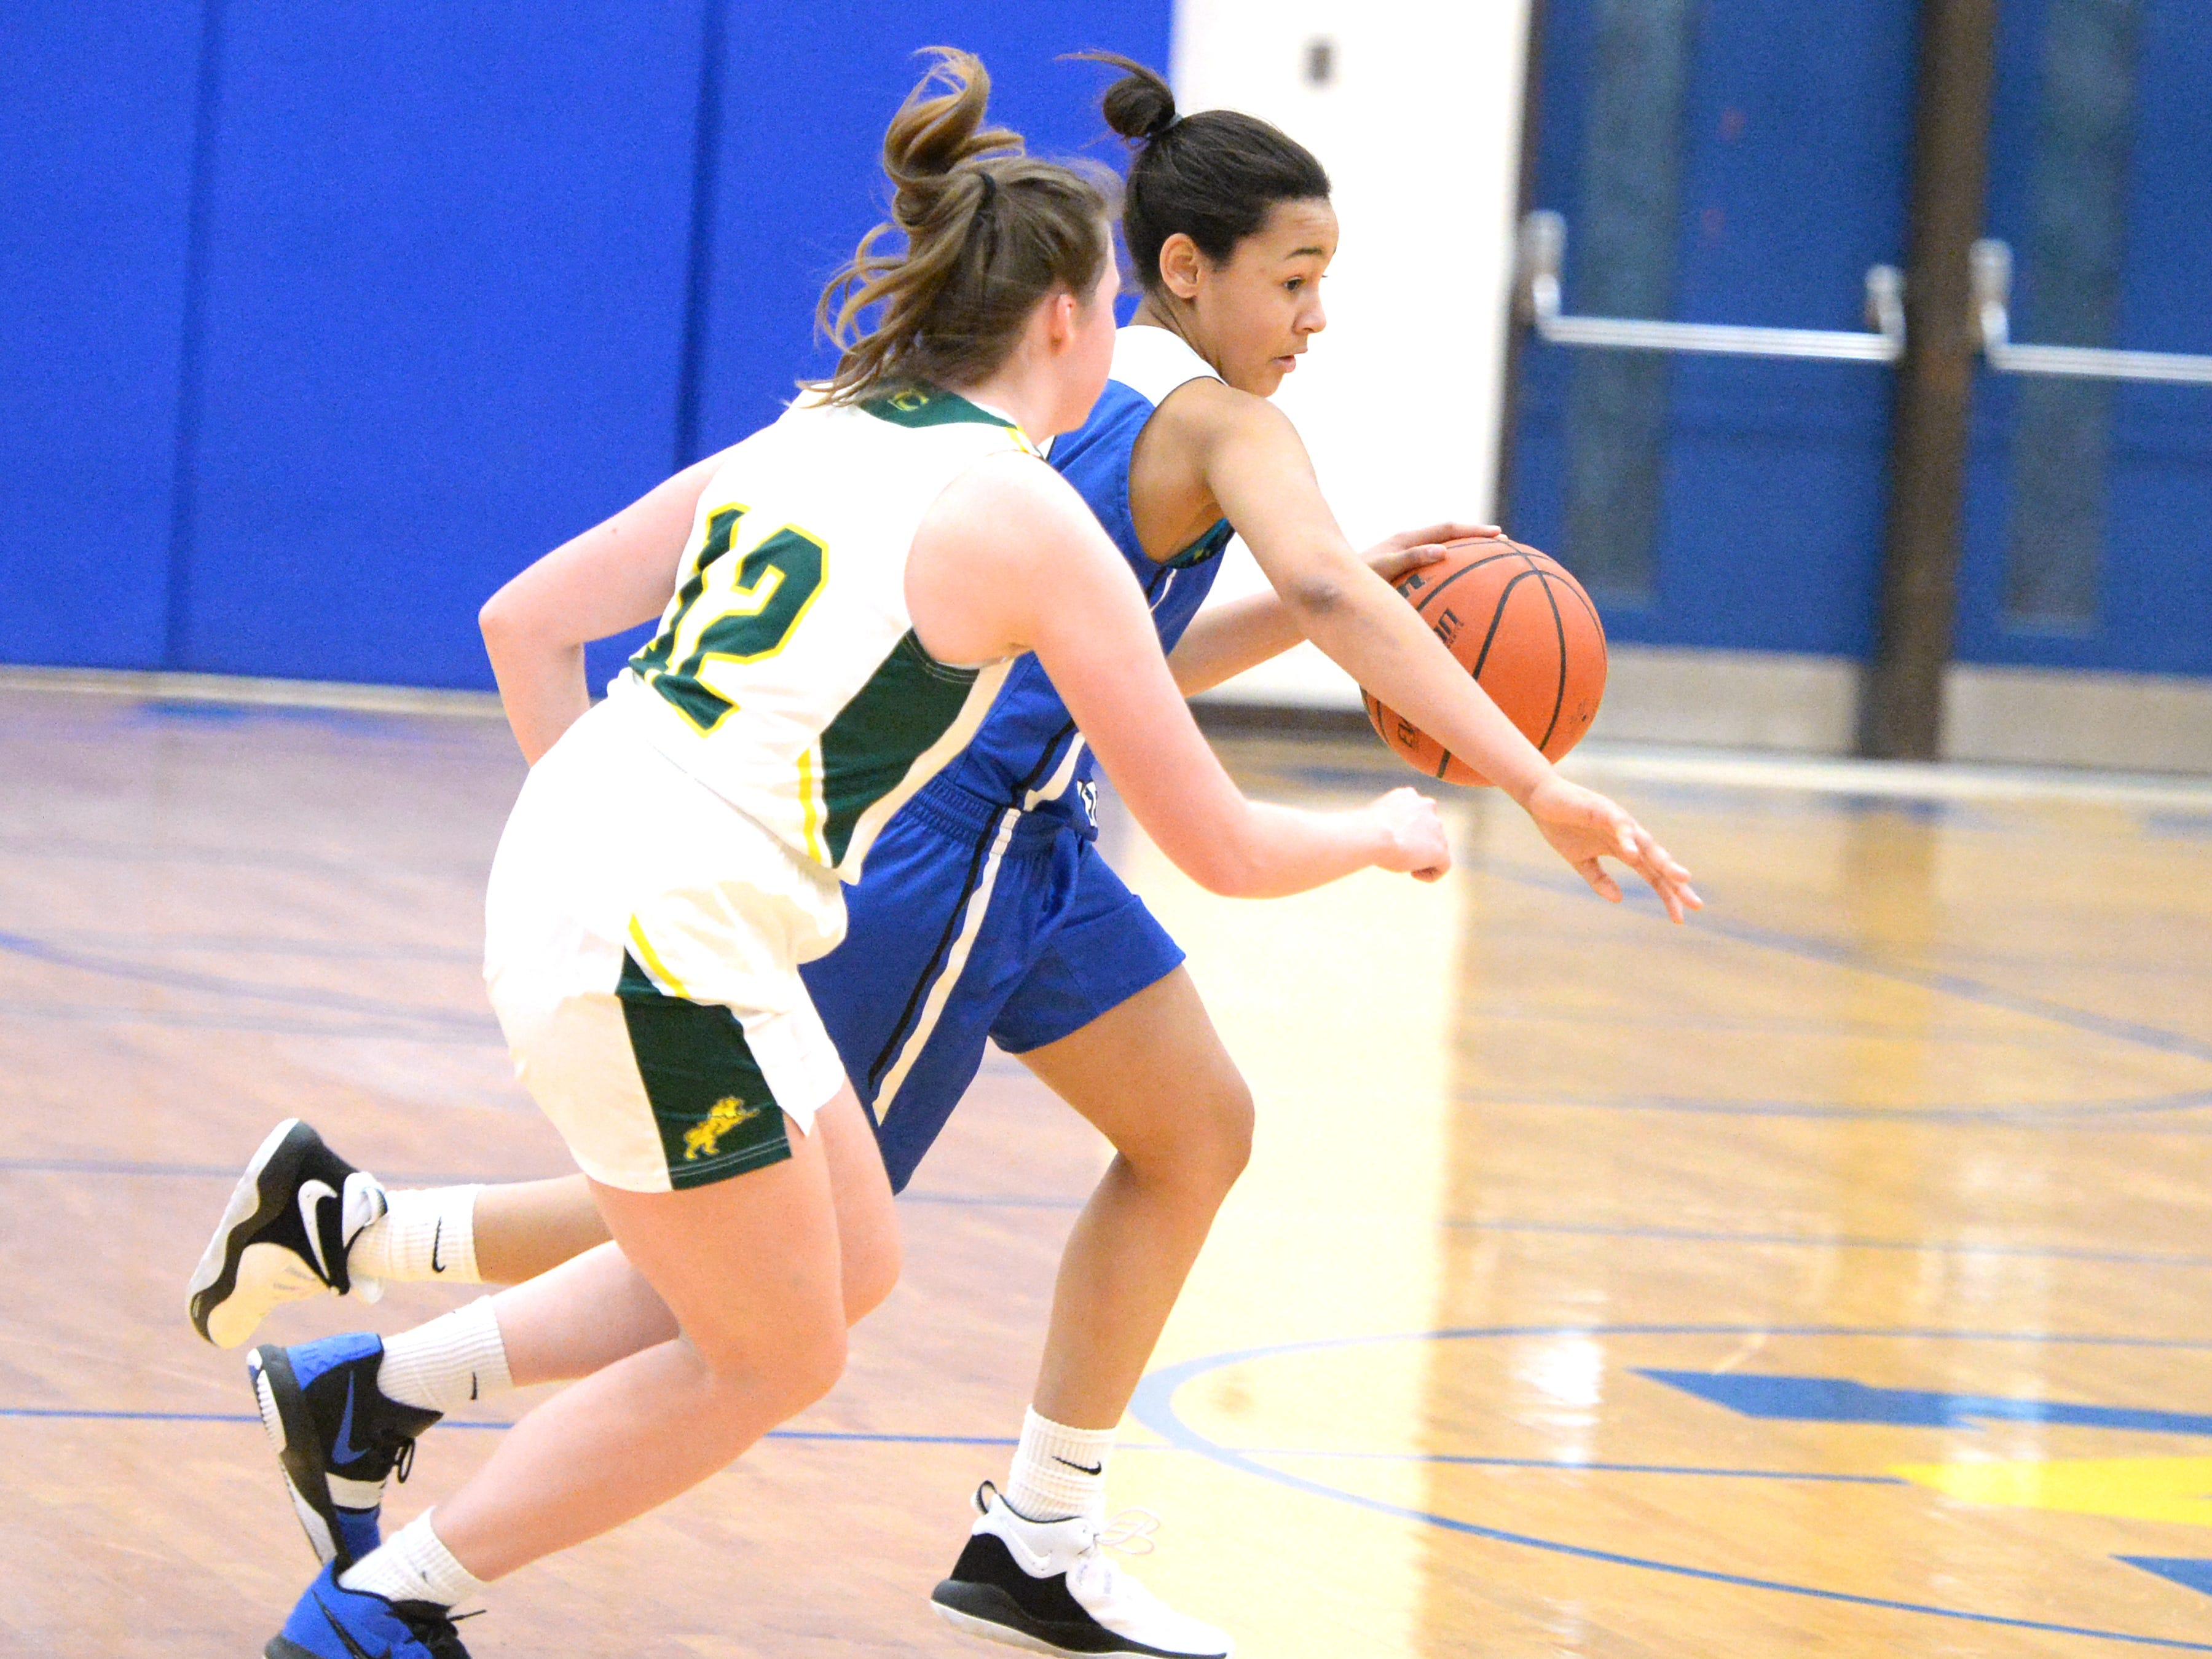 Fort Defiance's Kiersten Ransome drives around Louisa's Loralie Andre Saturday at the Play of Preemies Showcase at Western Albemarle High School.